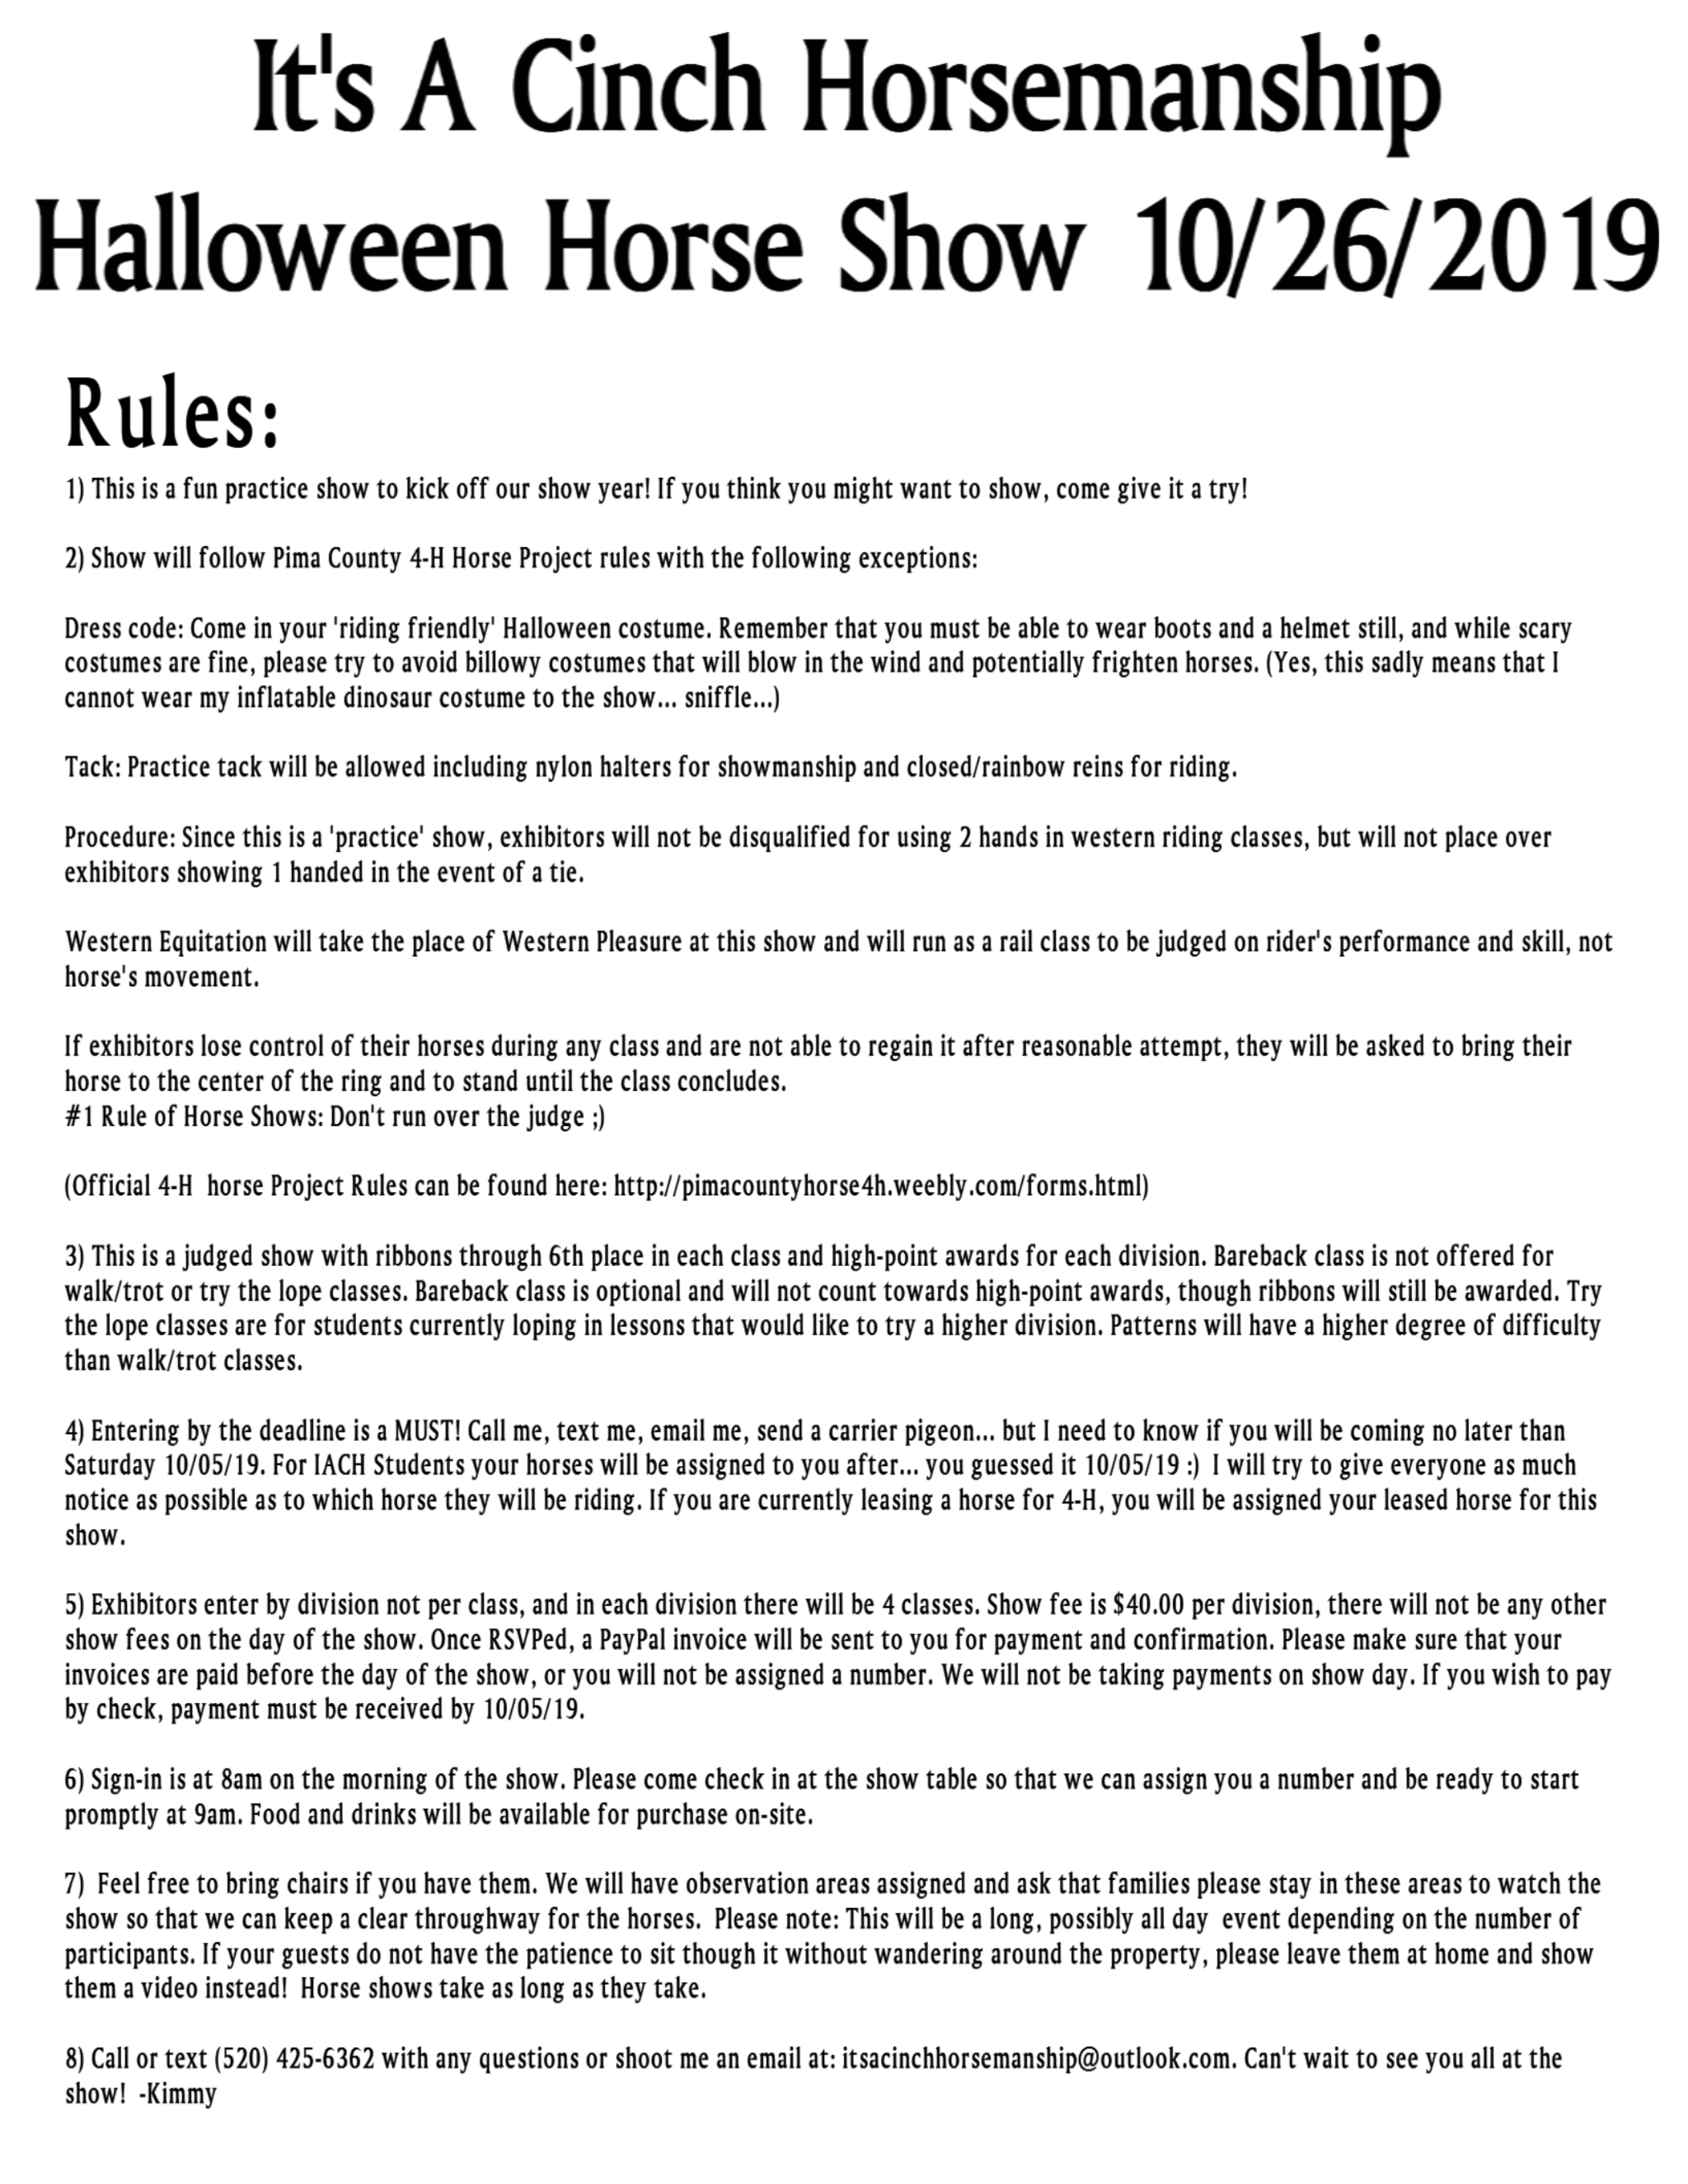 Show Rules